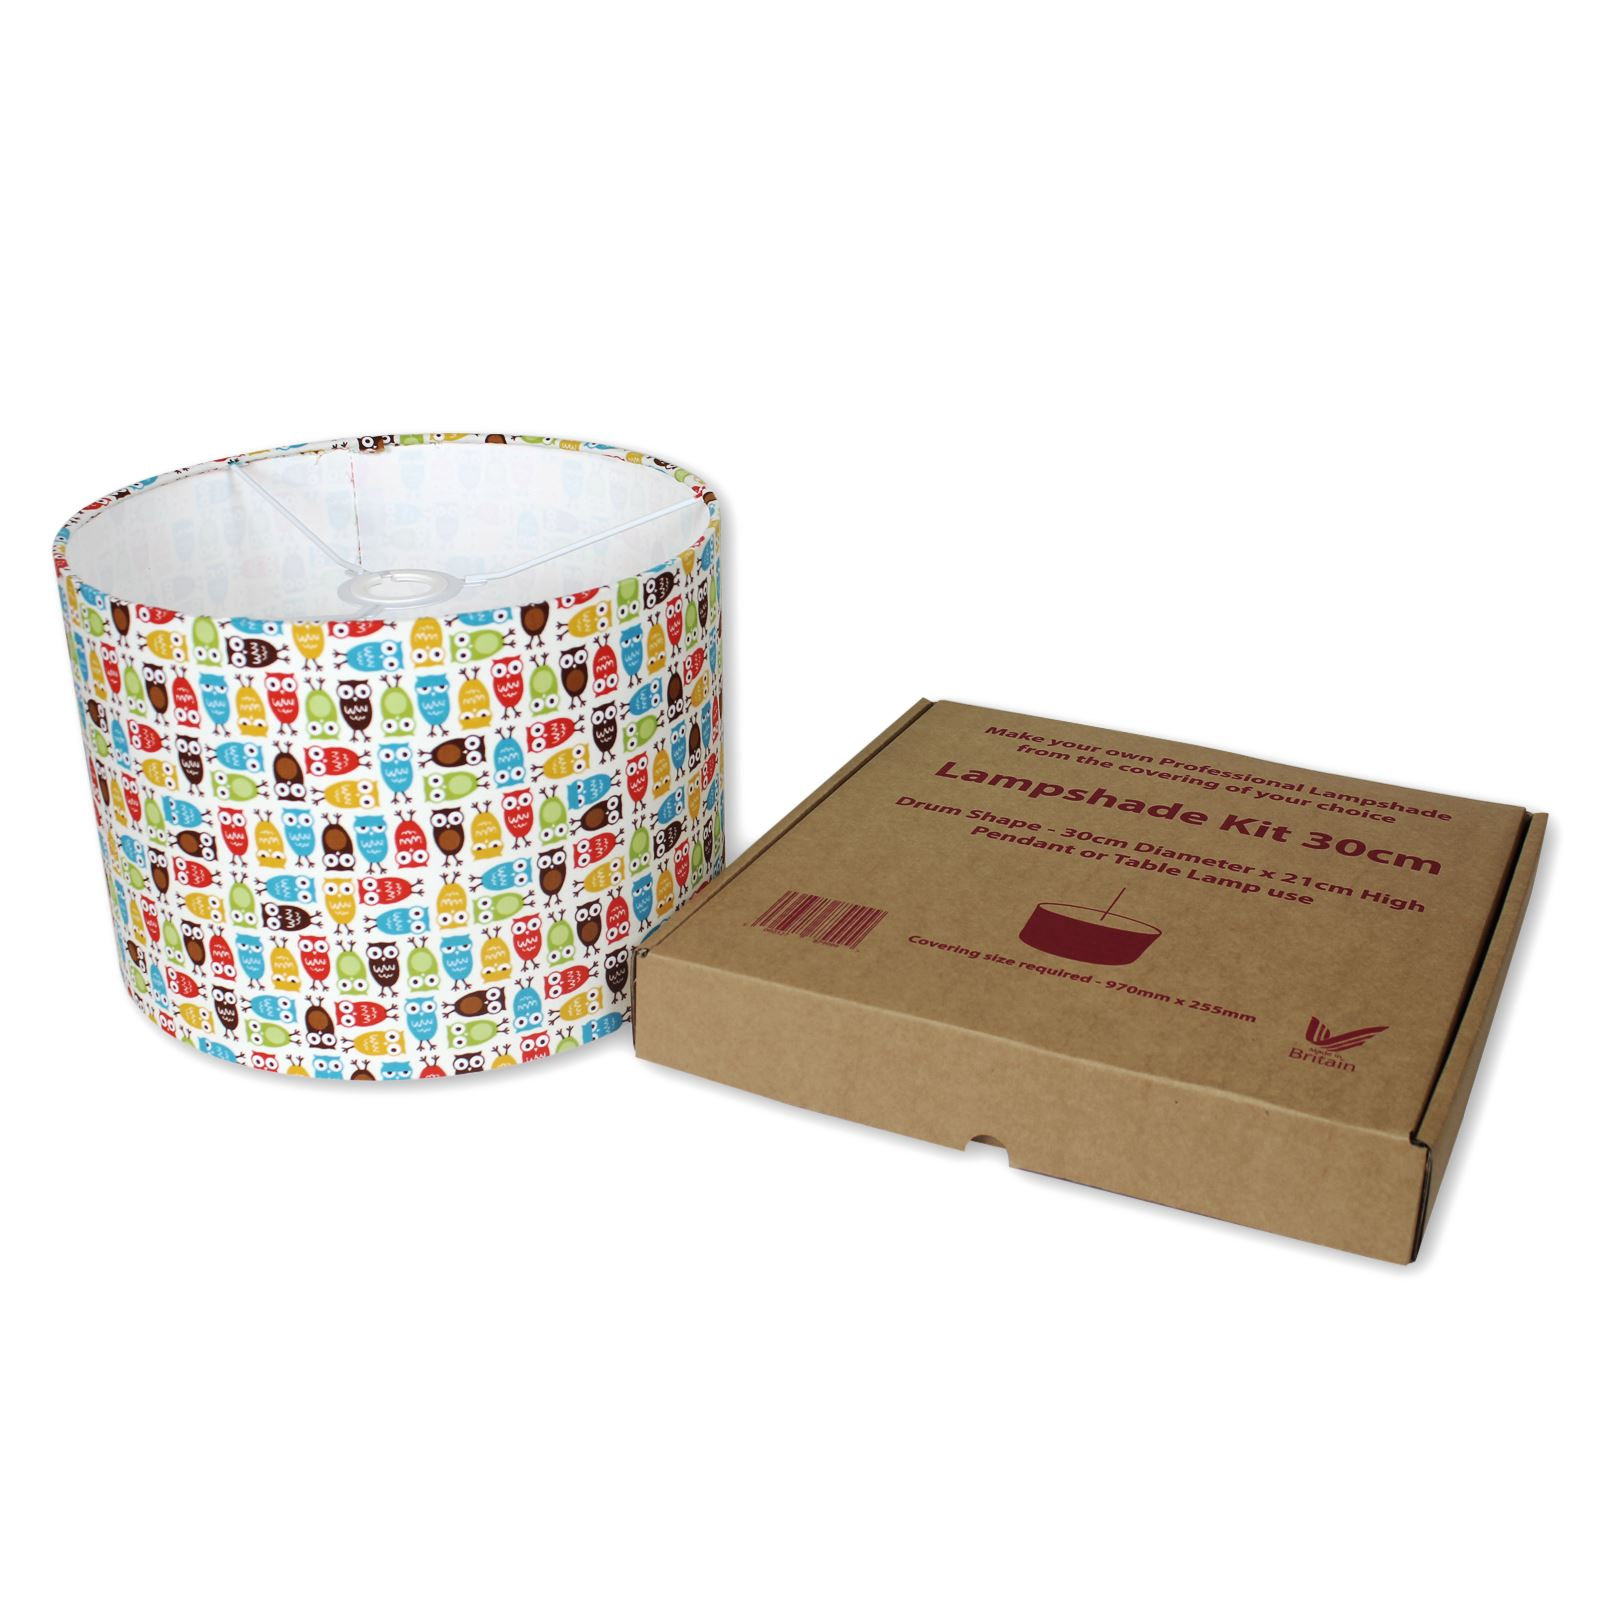 30cm Details About Lampshade Kits Make Your Own Lampshades 20cm 30cm 40cm Diameter Drum